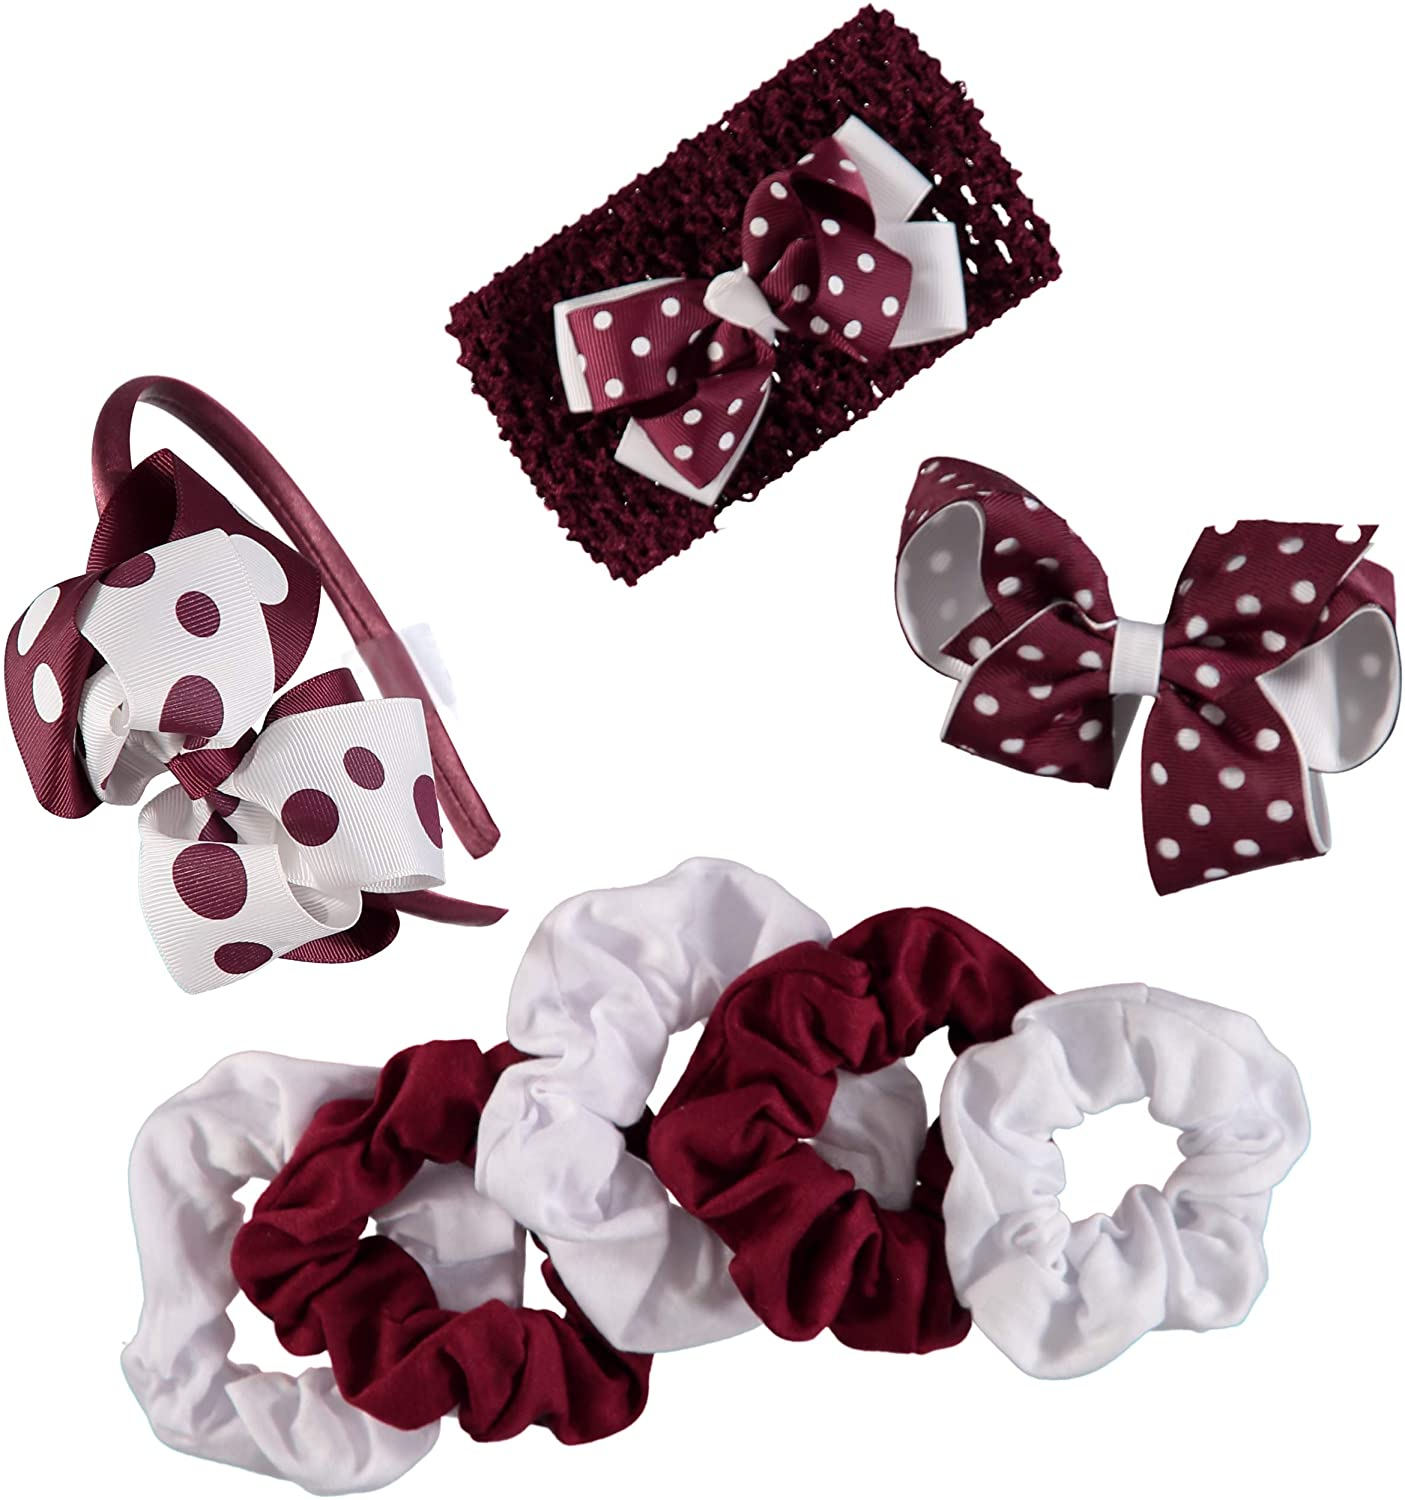 French Toast Kid's School Uniform Stretch Headbands and Ponytail Holders, 4-pack, Burgundy & White, One Size